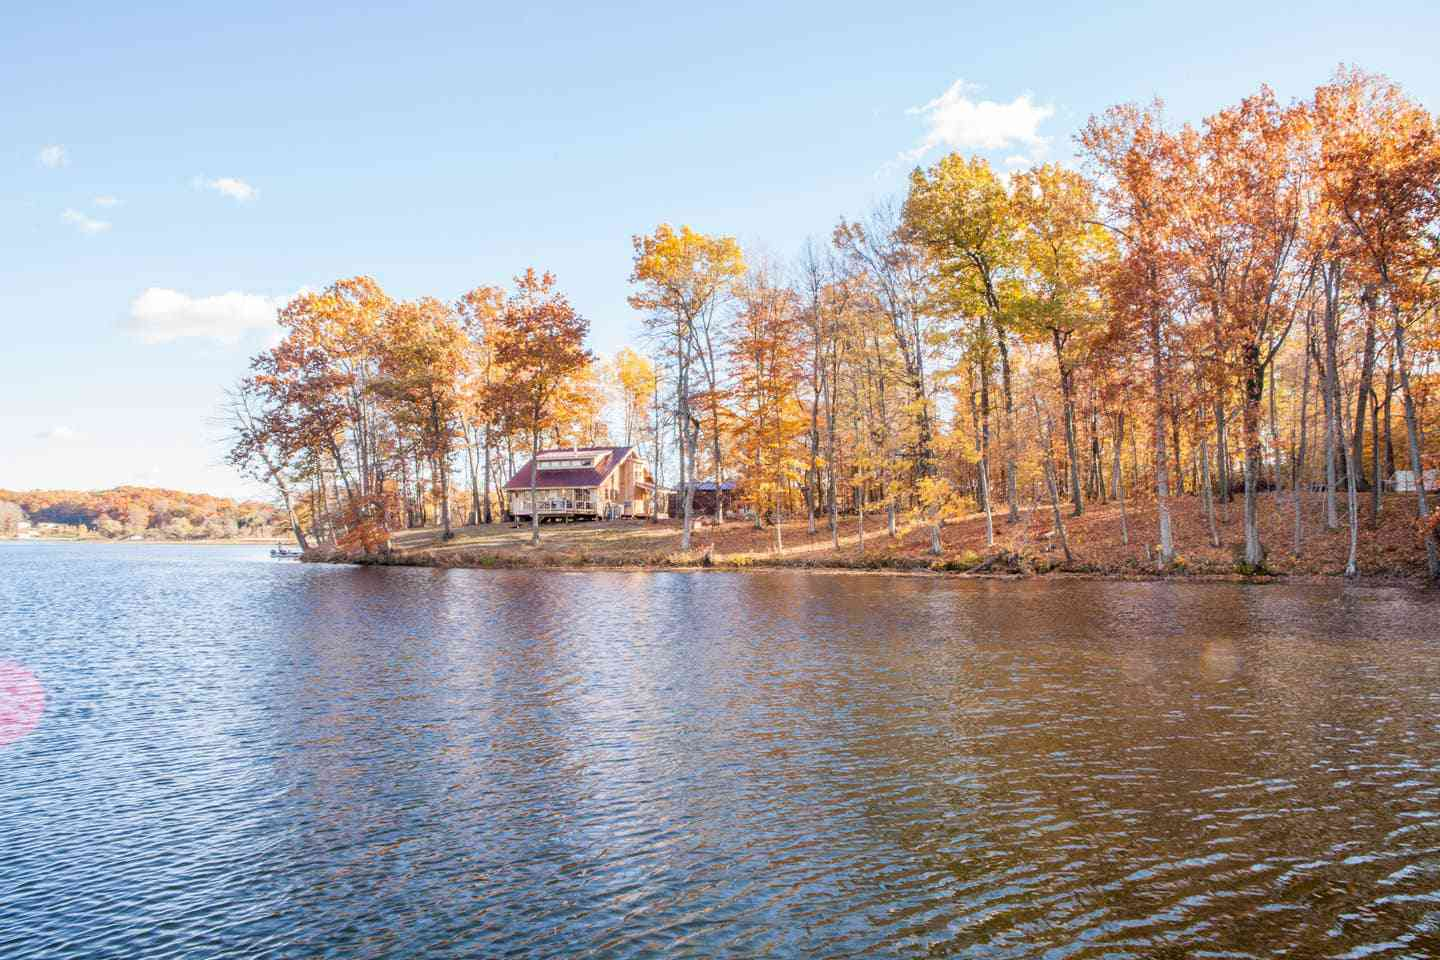 Private Island with Treehouse and Pontoon Boat